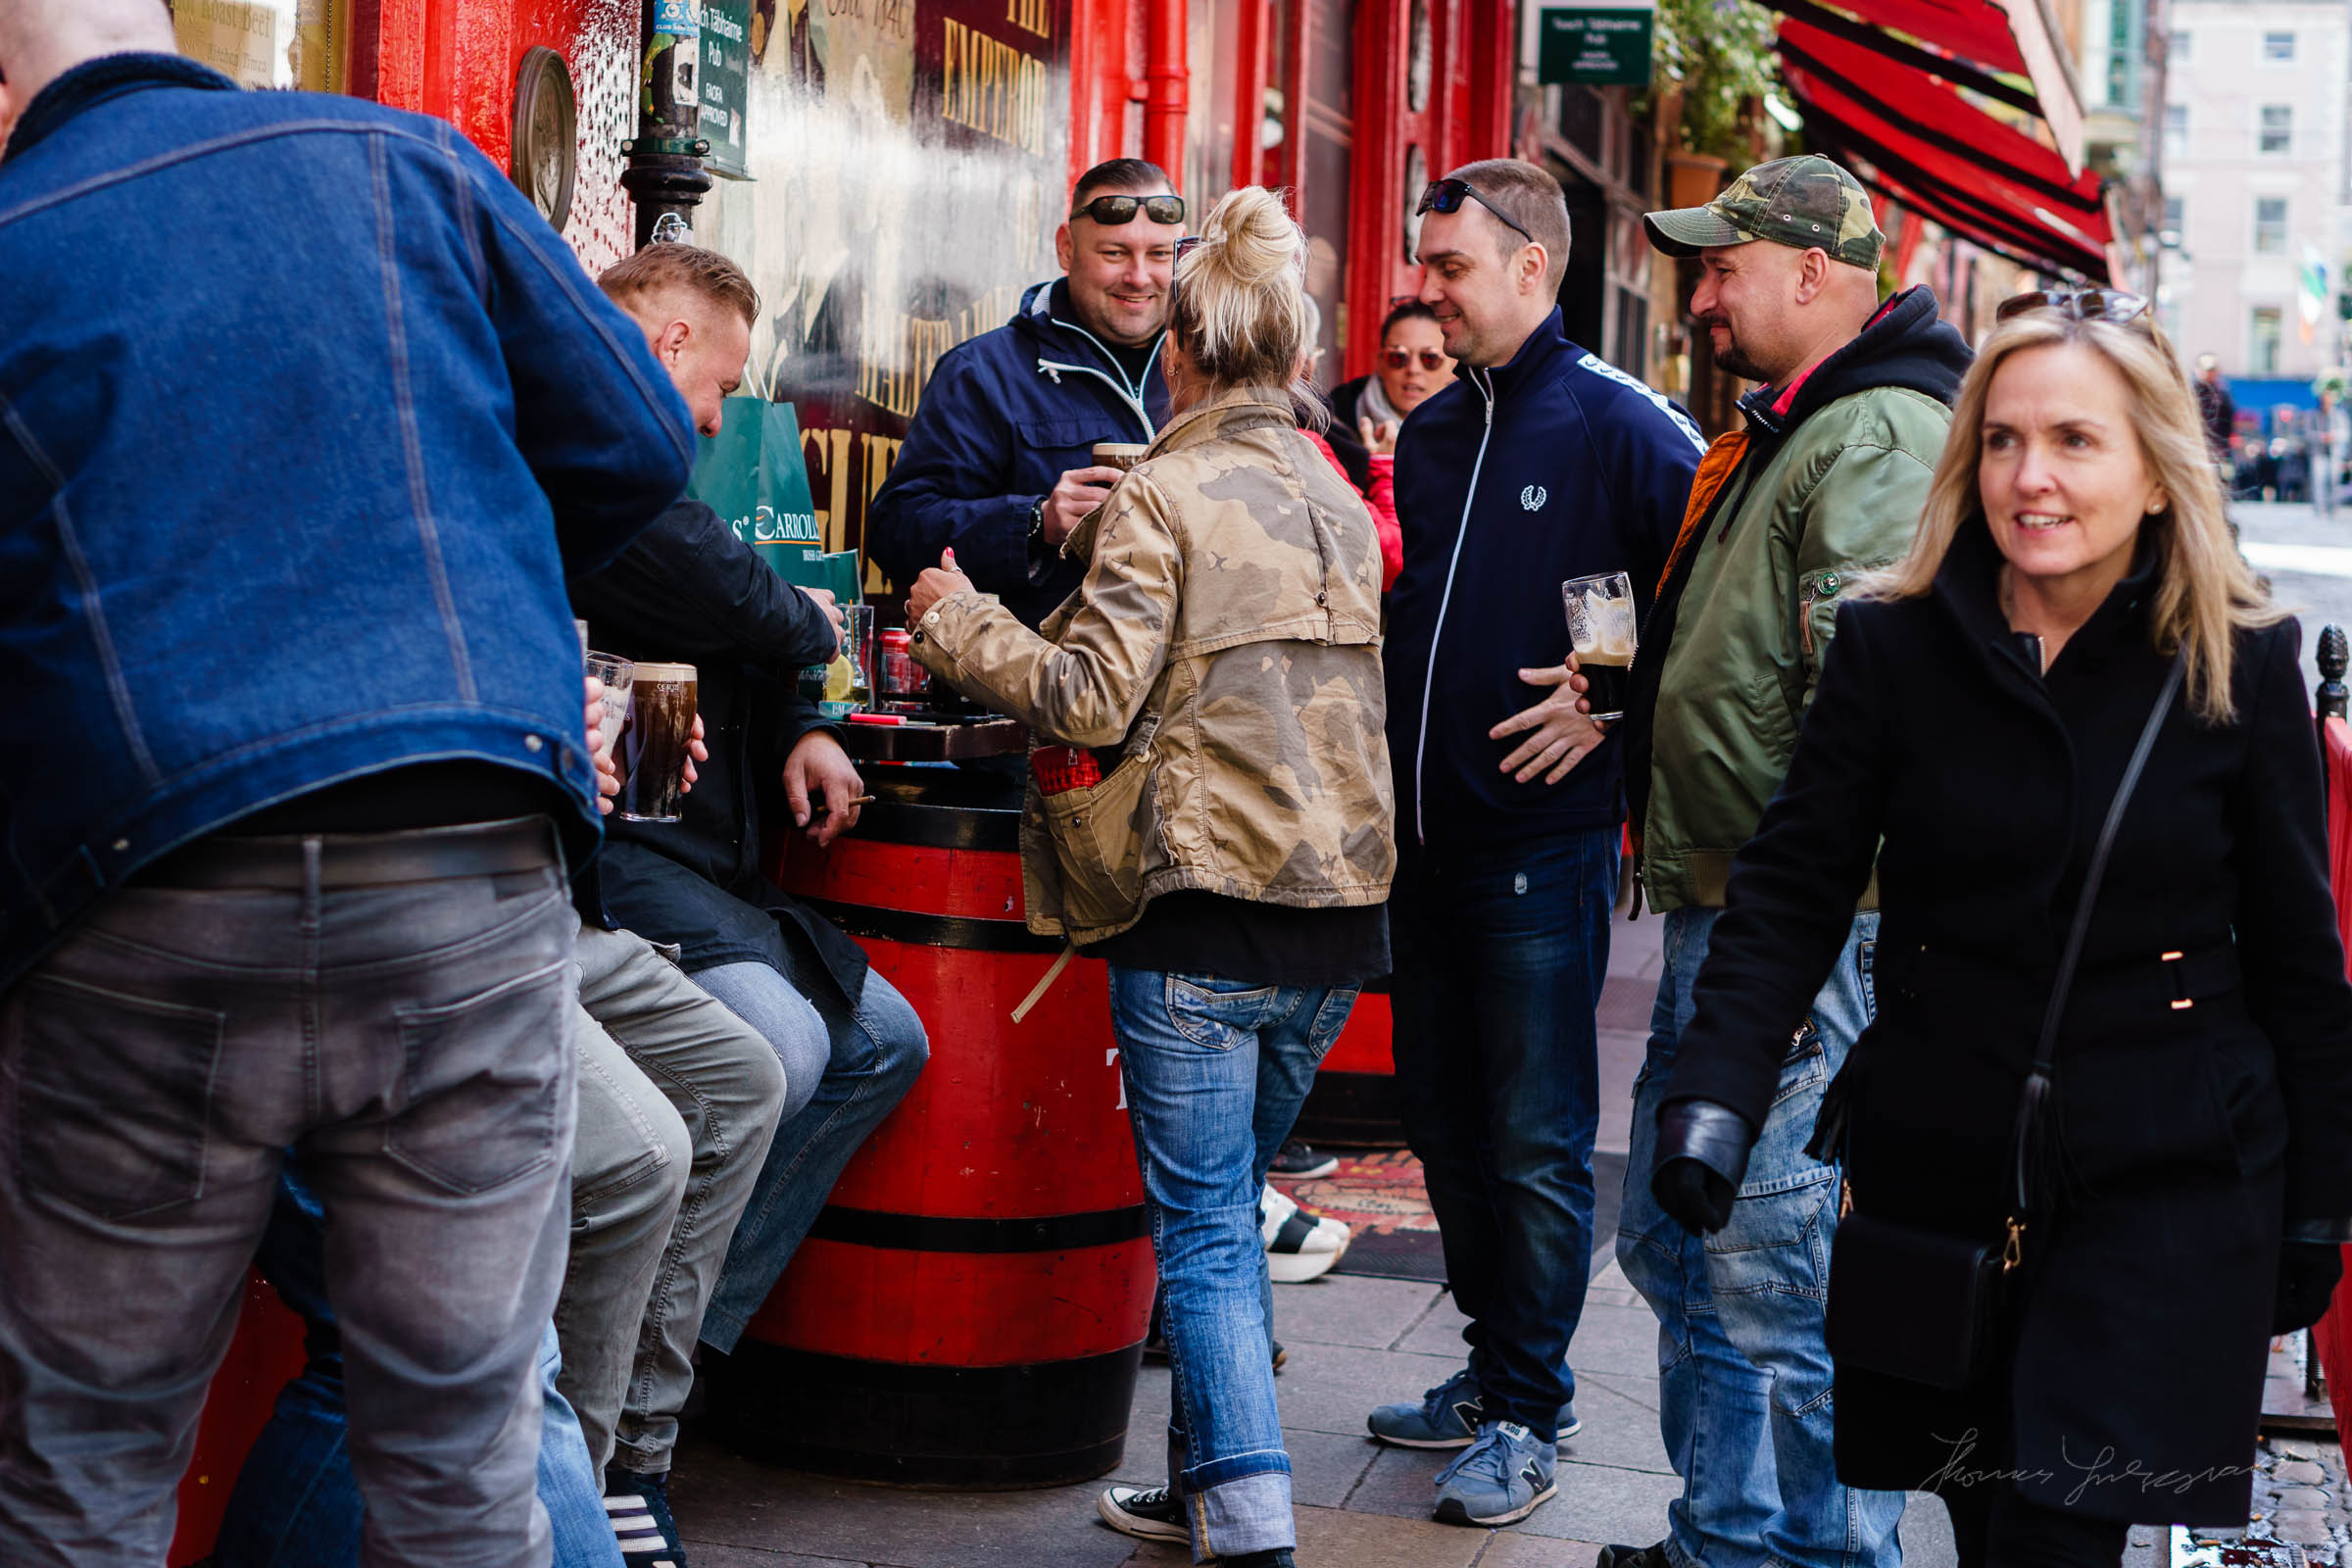 people at a bar  - Street Photography in Dublin